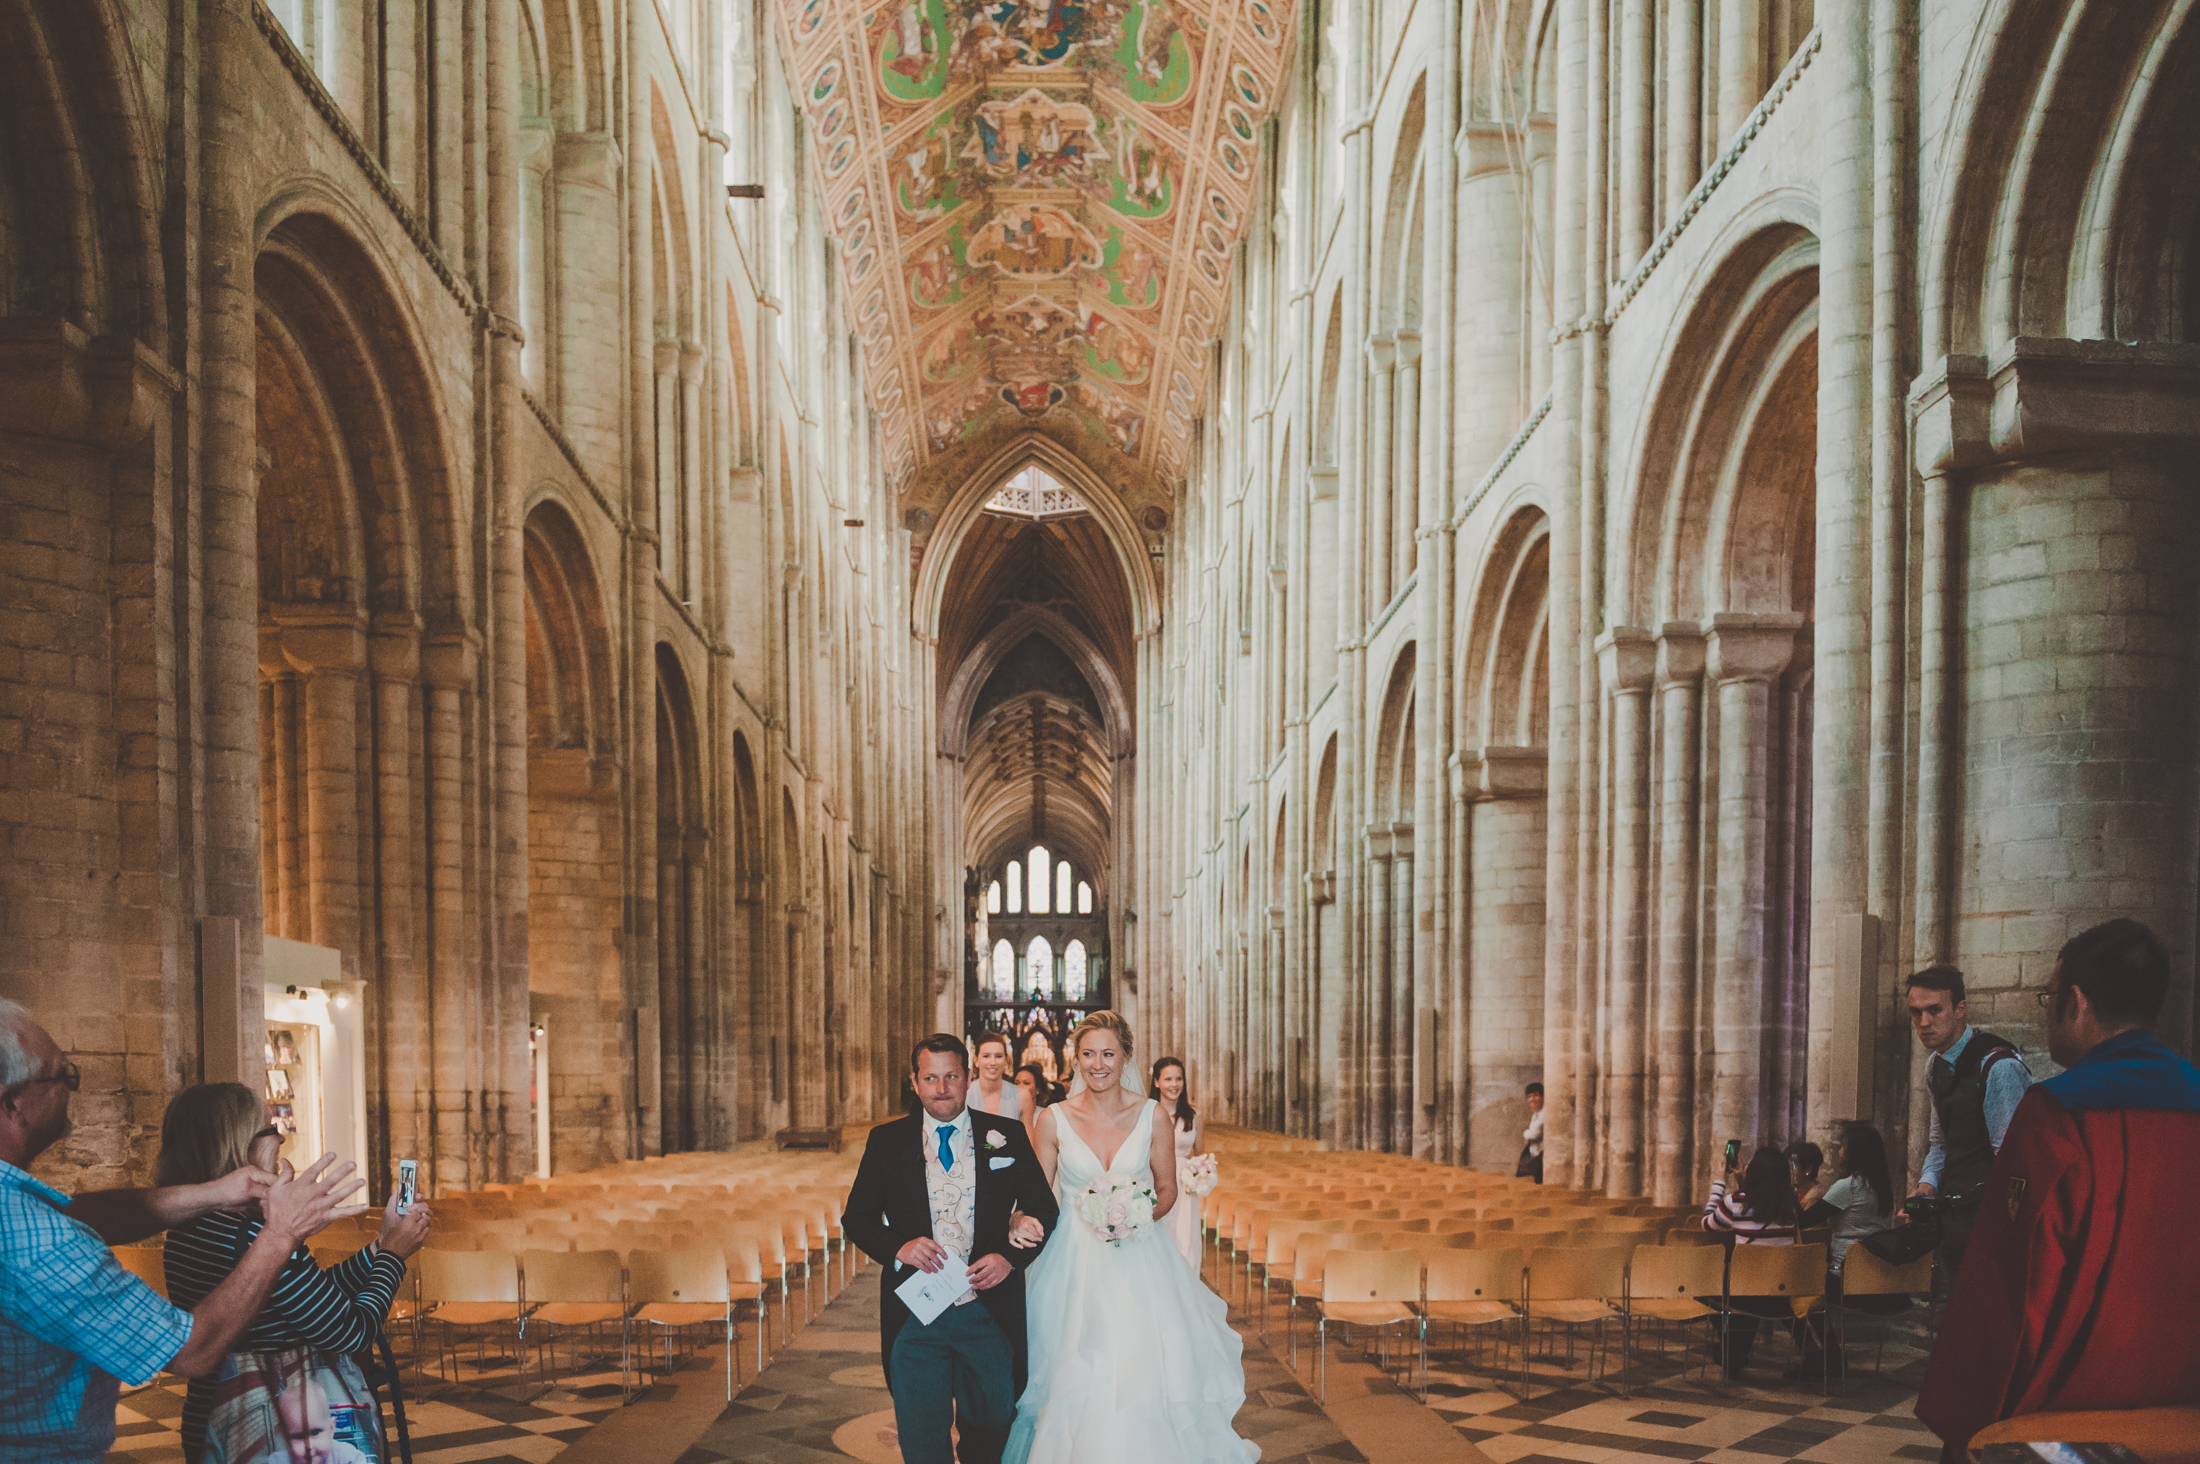 Ely-Cathedral-Wedding-017.jpg